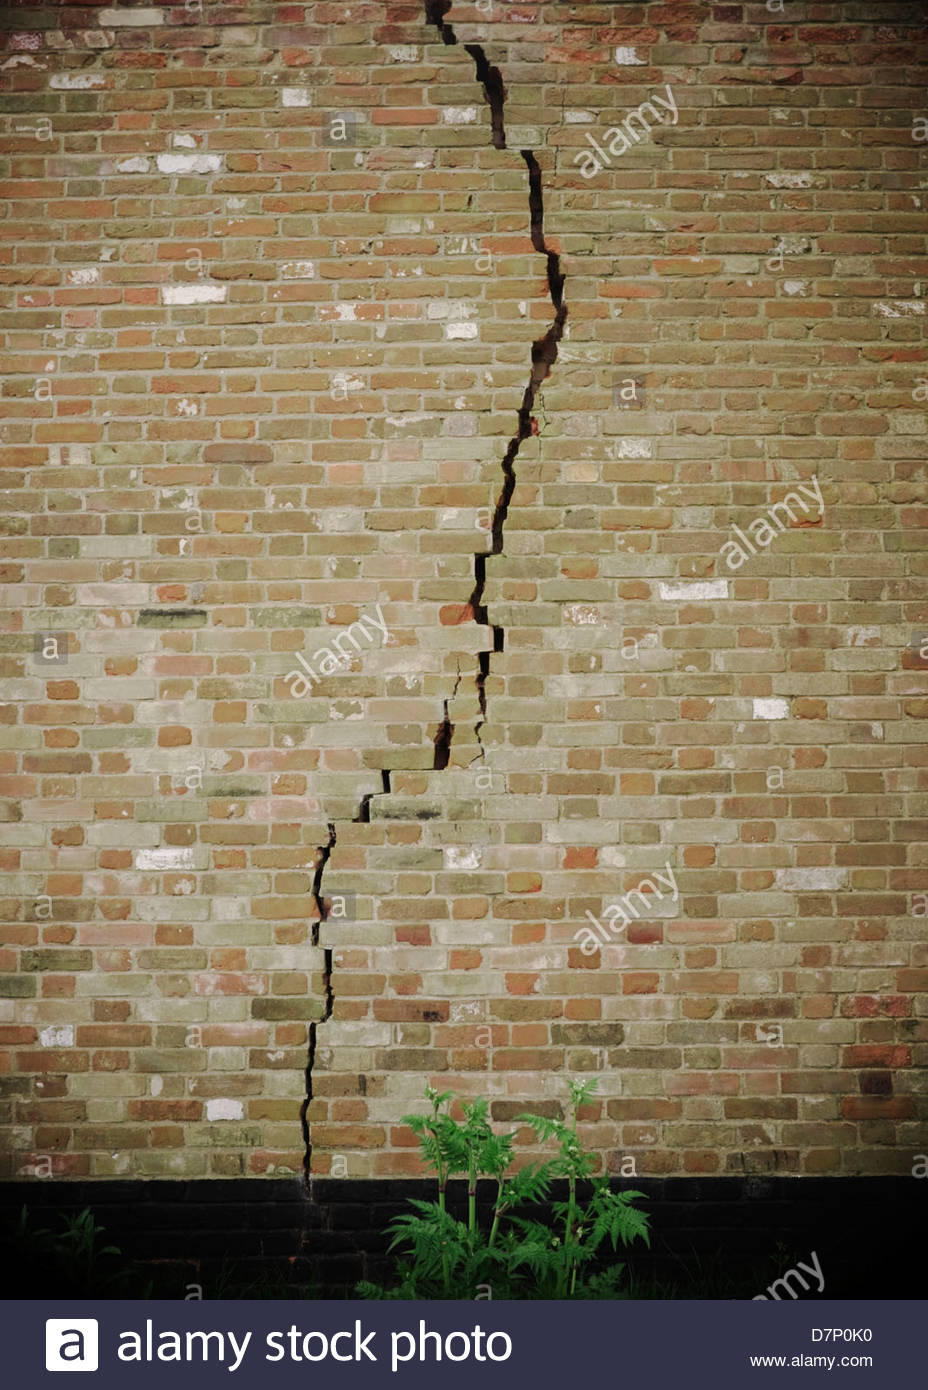 Fracture/crack in a brick wall. Earthquake/fracking concept. - Stock Image